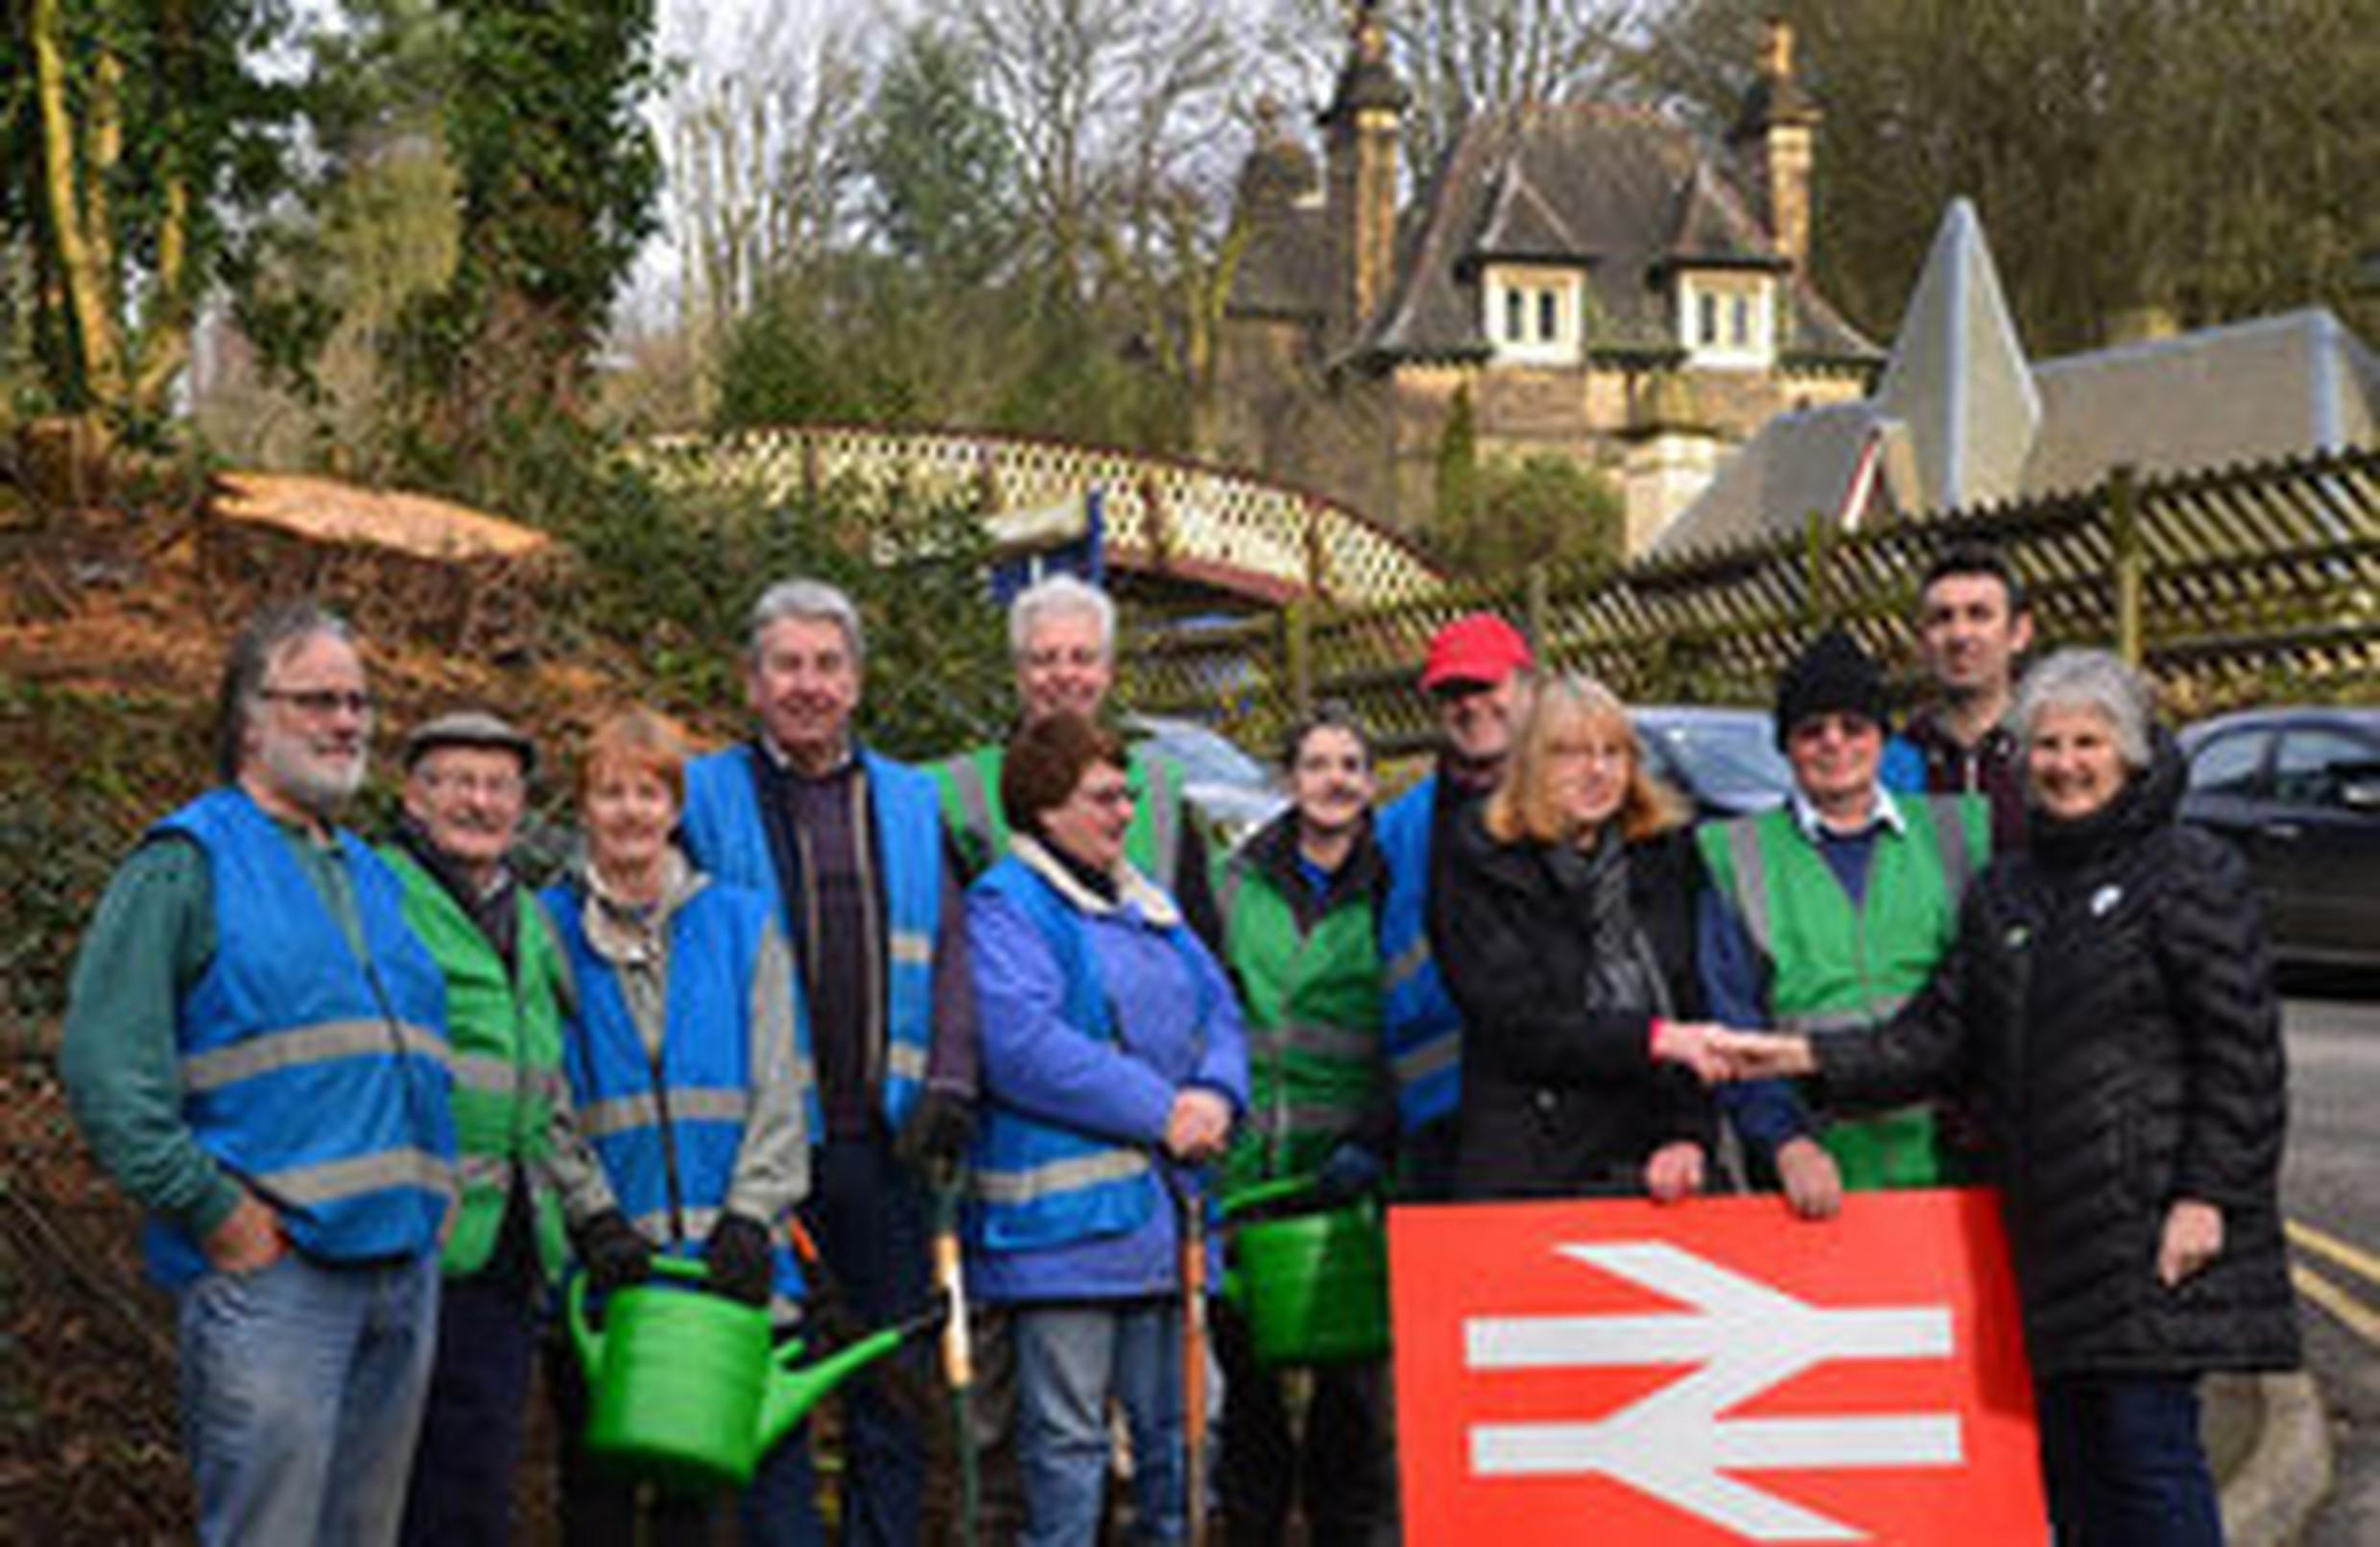 Cromford Community Rail is one of and 60 partnerships